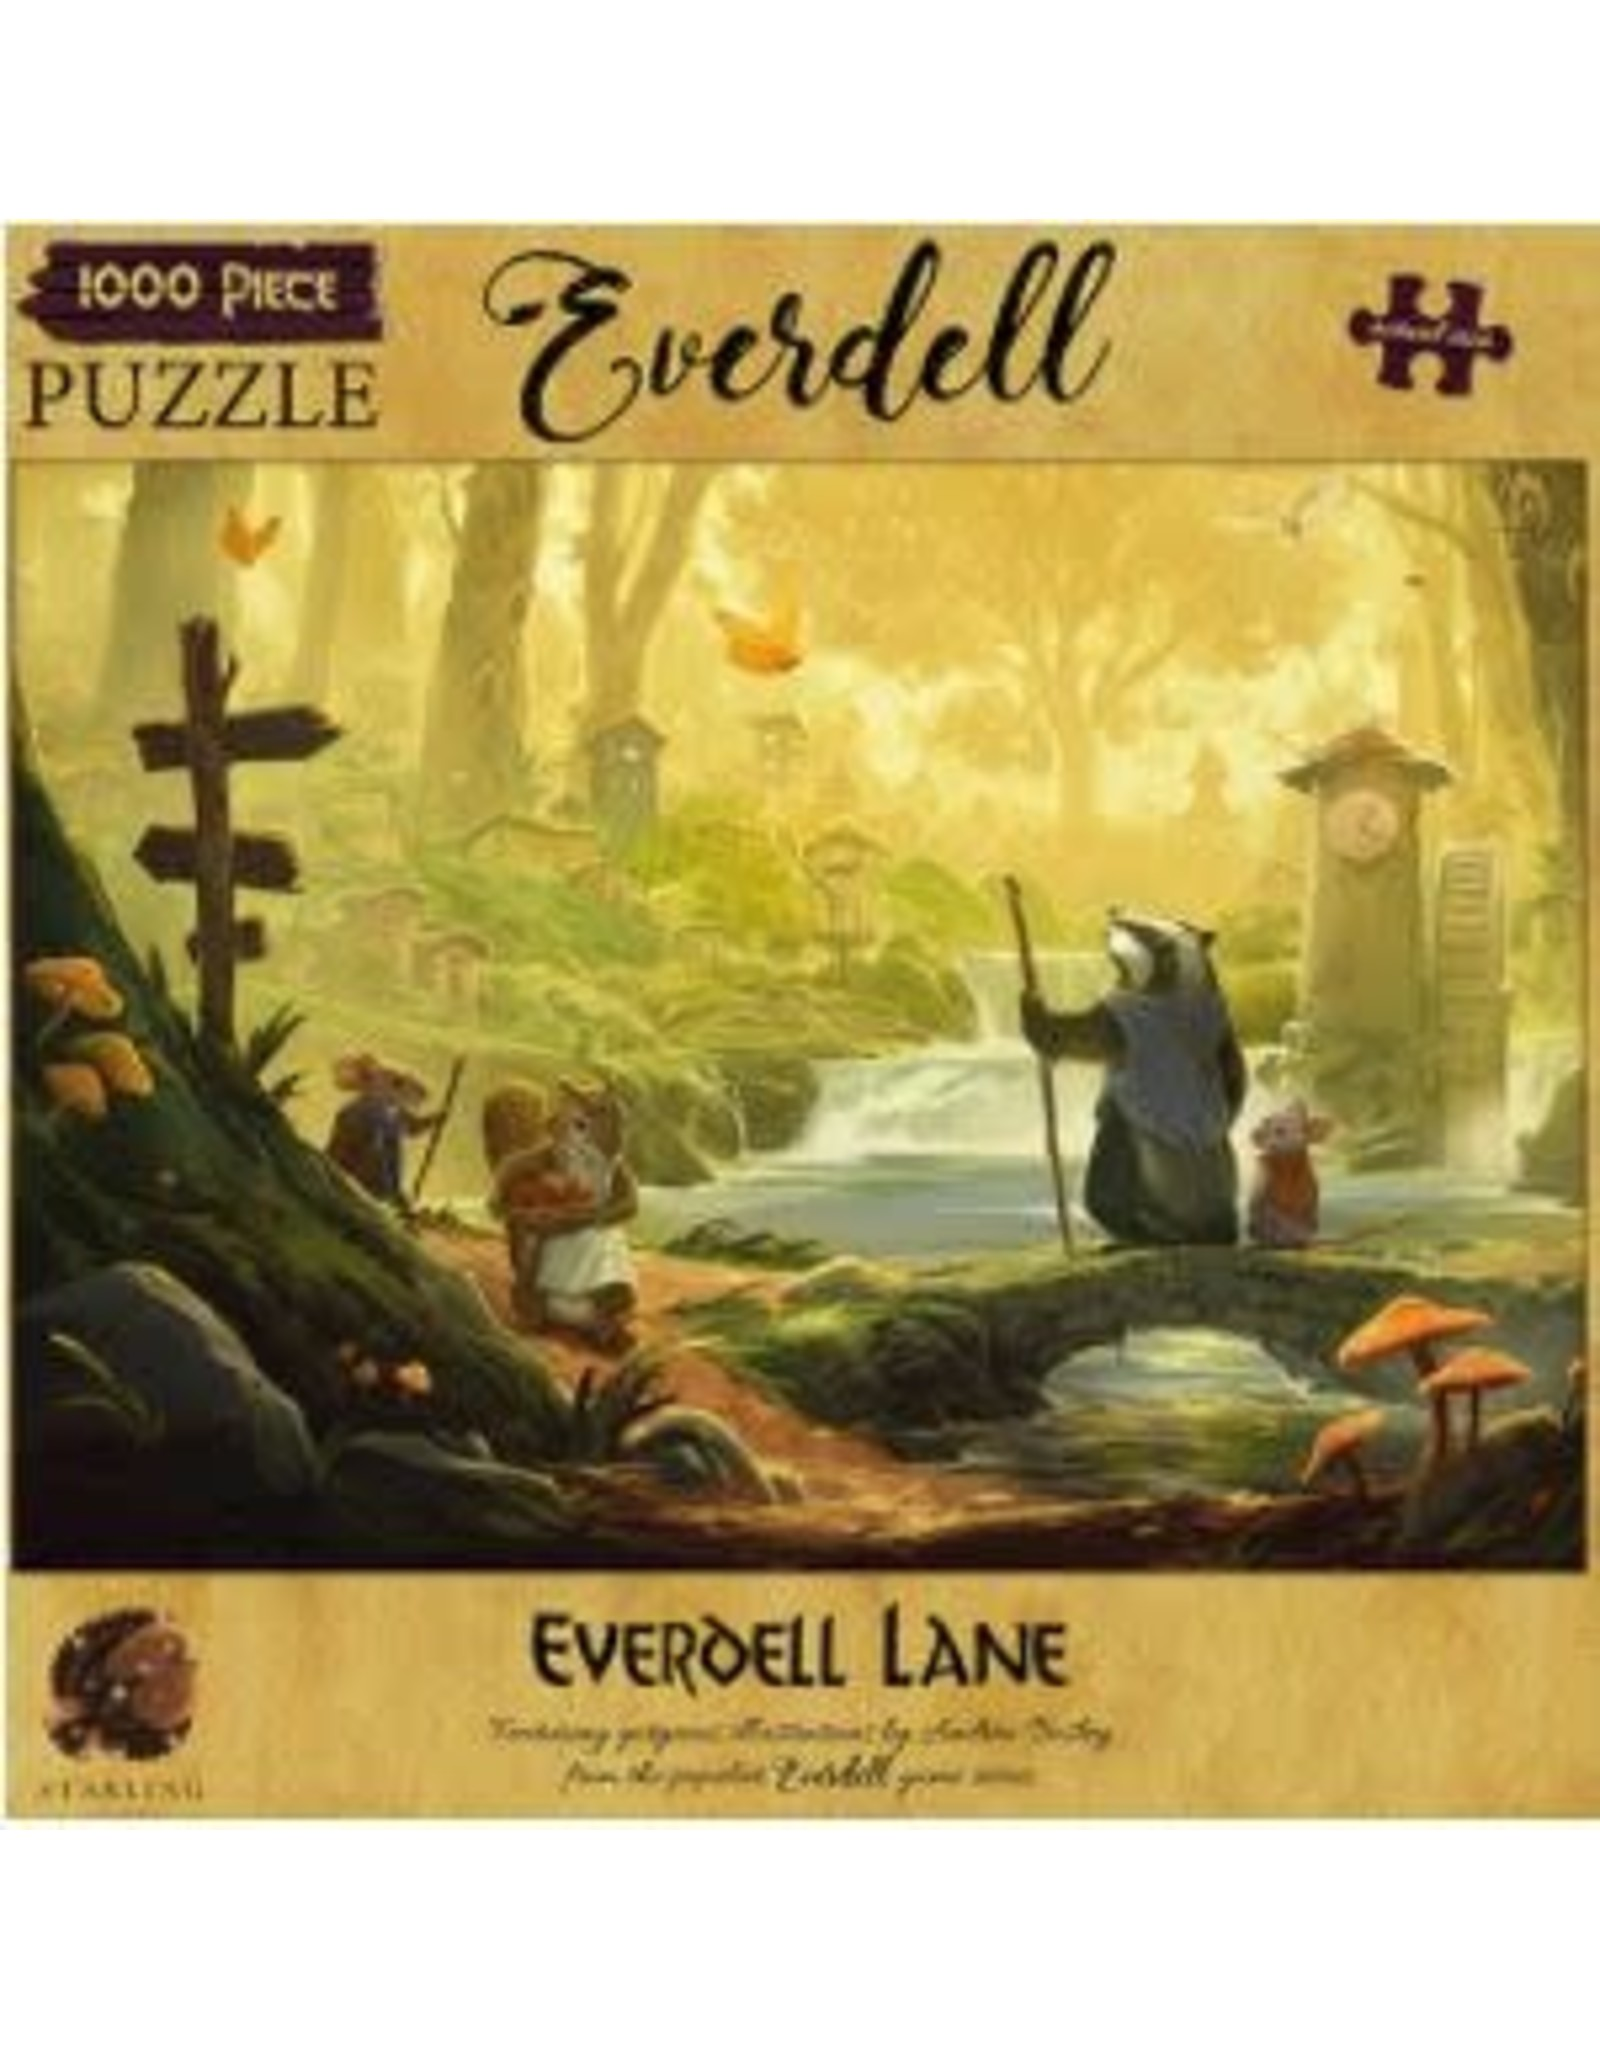 1000PC EVERDELL PUZZLE - EVERDELL LANE